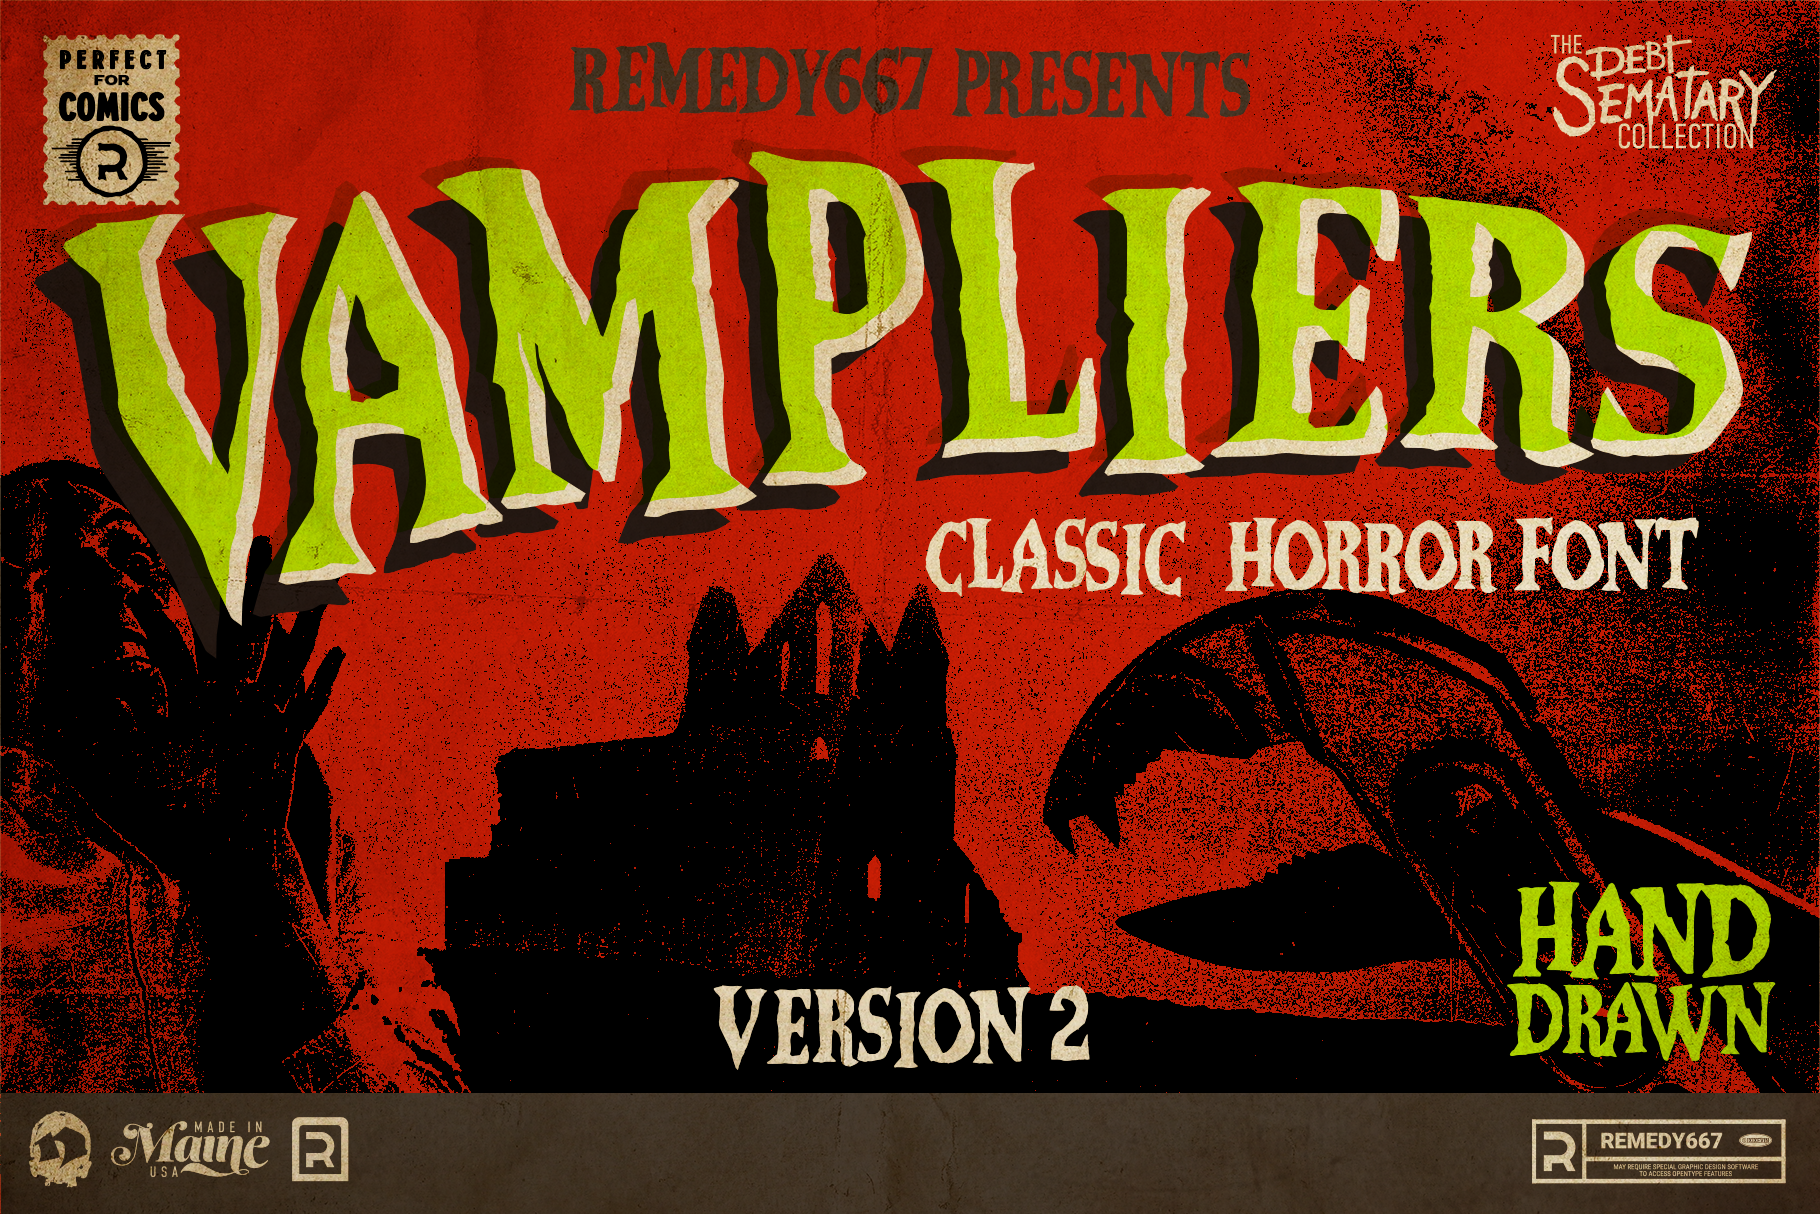 Vampliers - Classic Horror Font from Remedy667